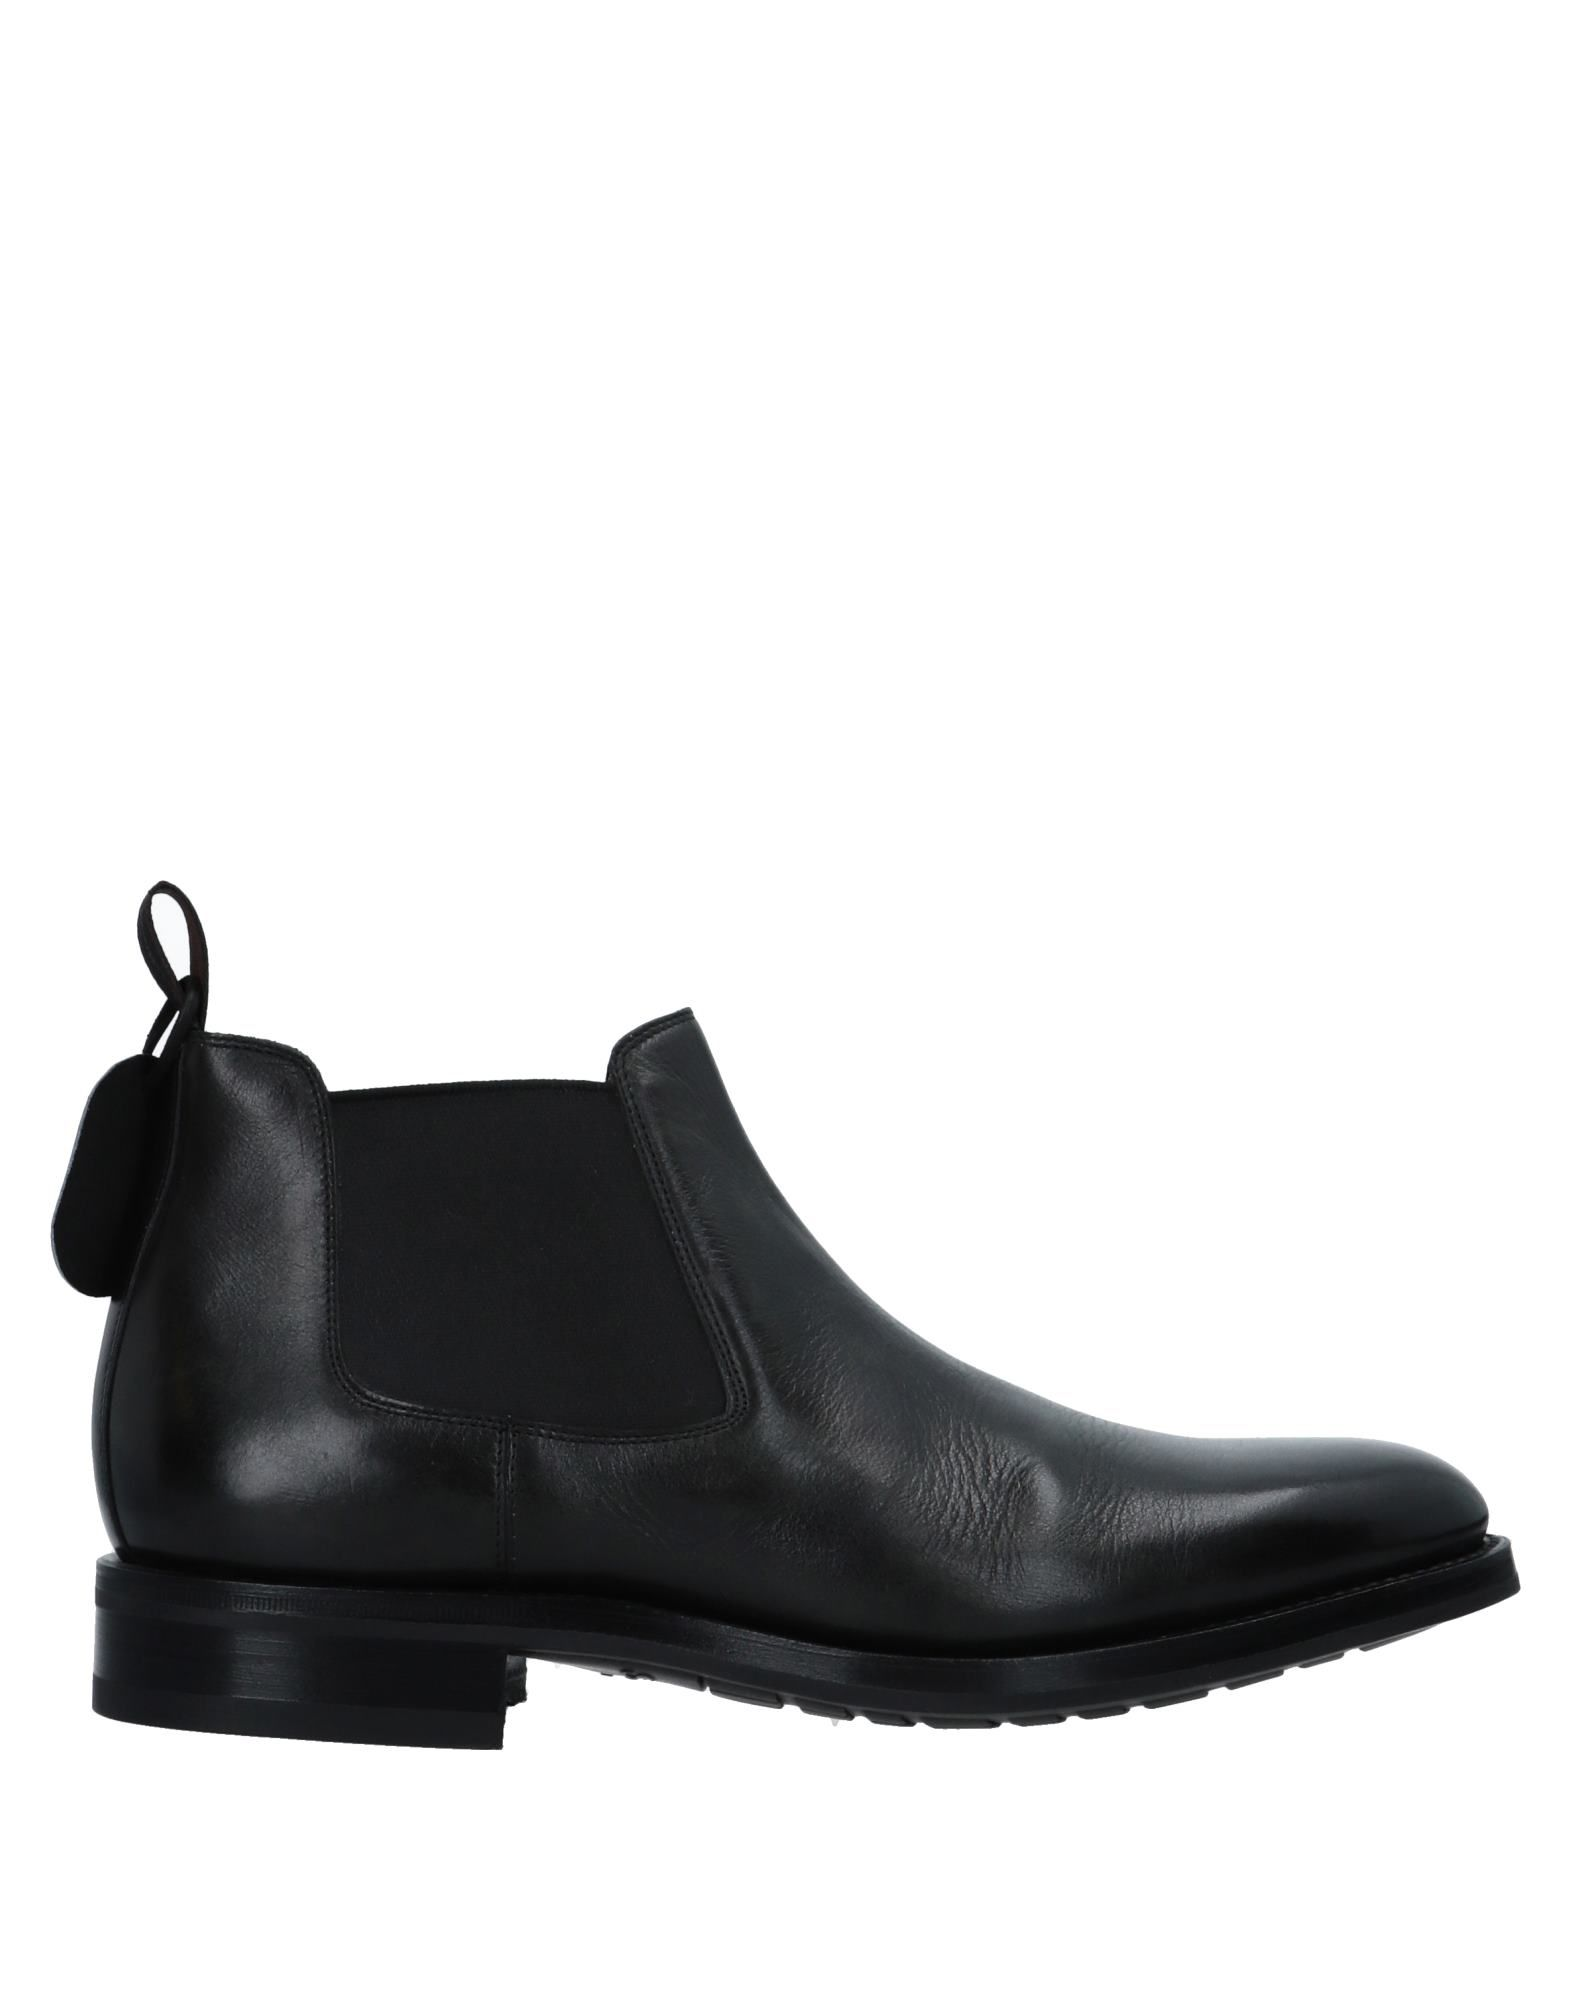 Bottine Santoni Homme - Bottines Santoni  Anthracite Dédouanement saisonnier